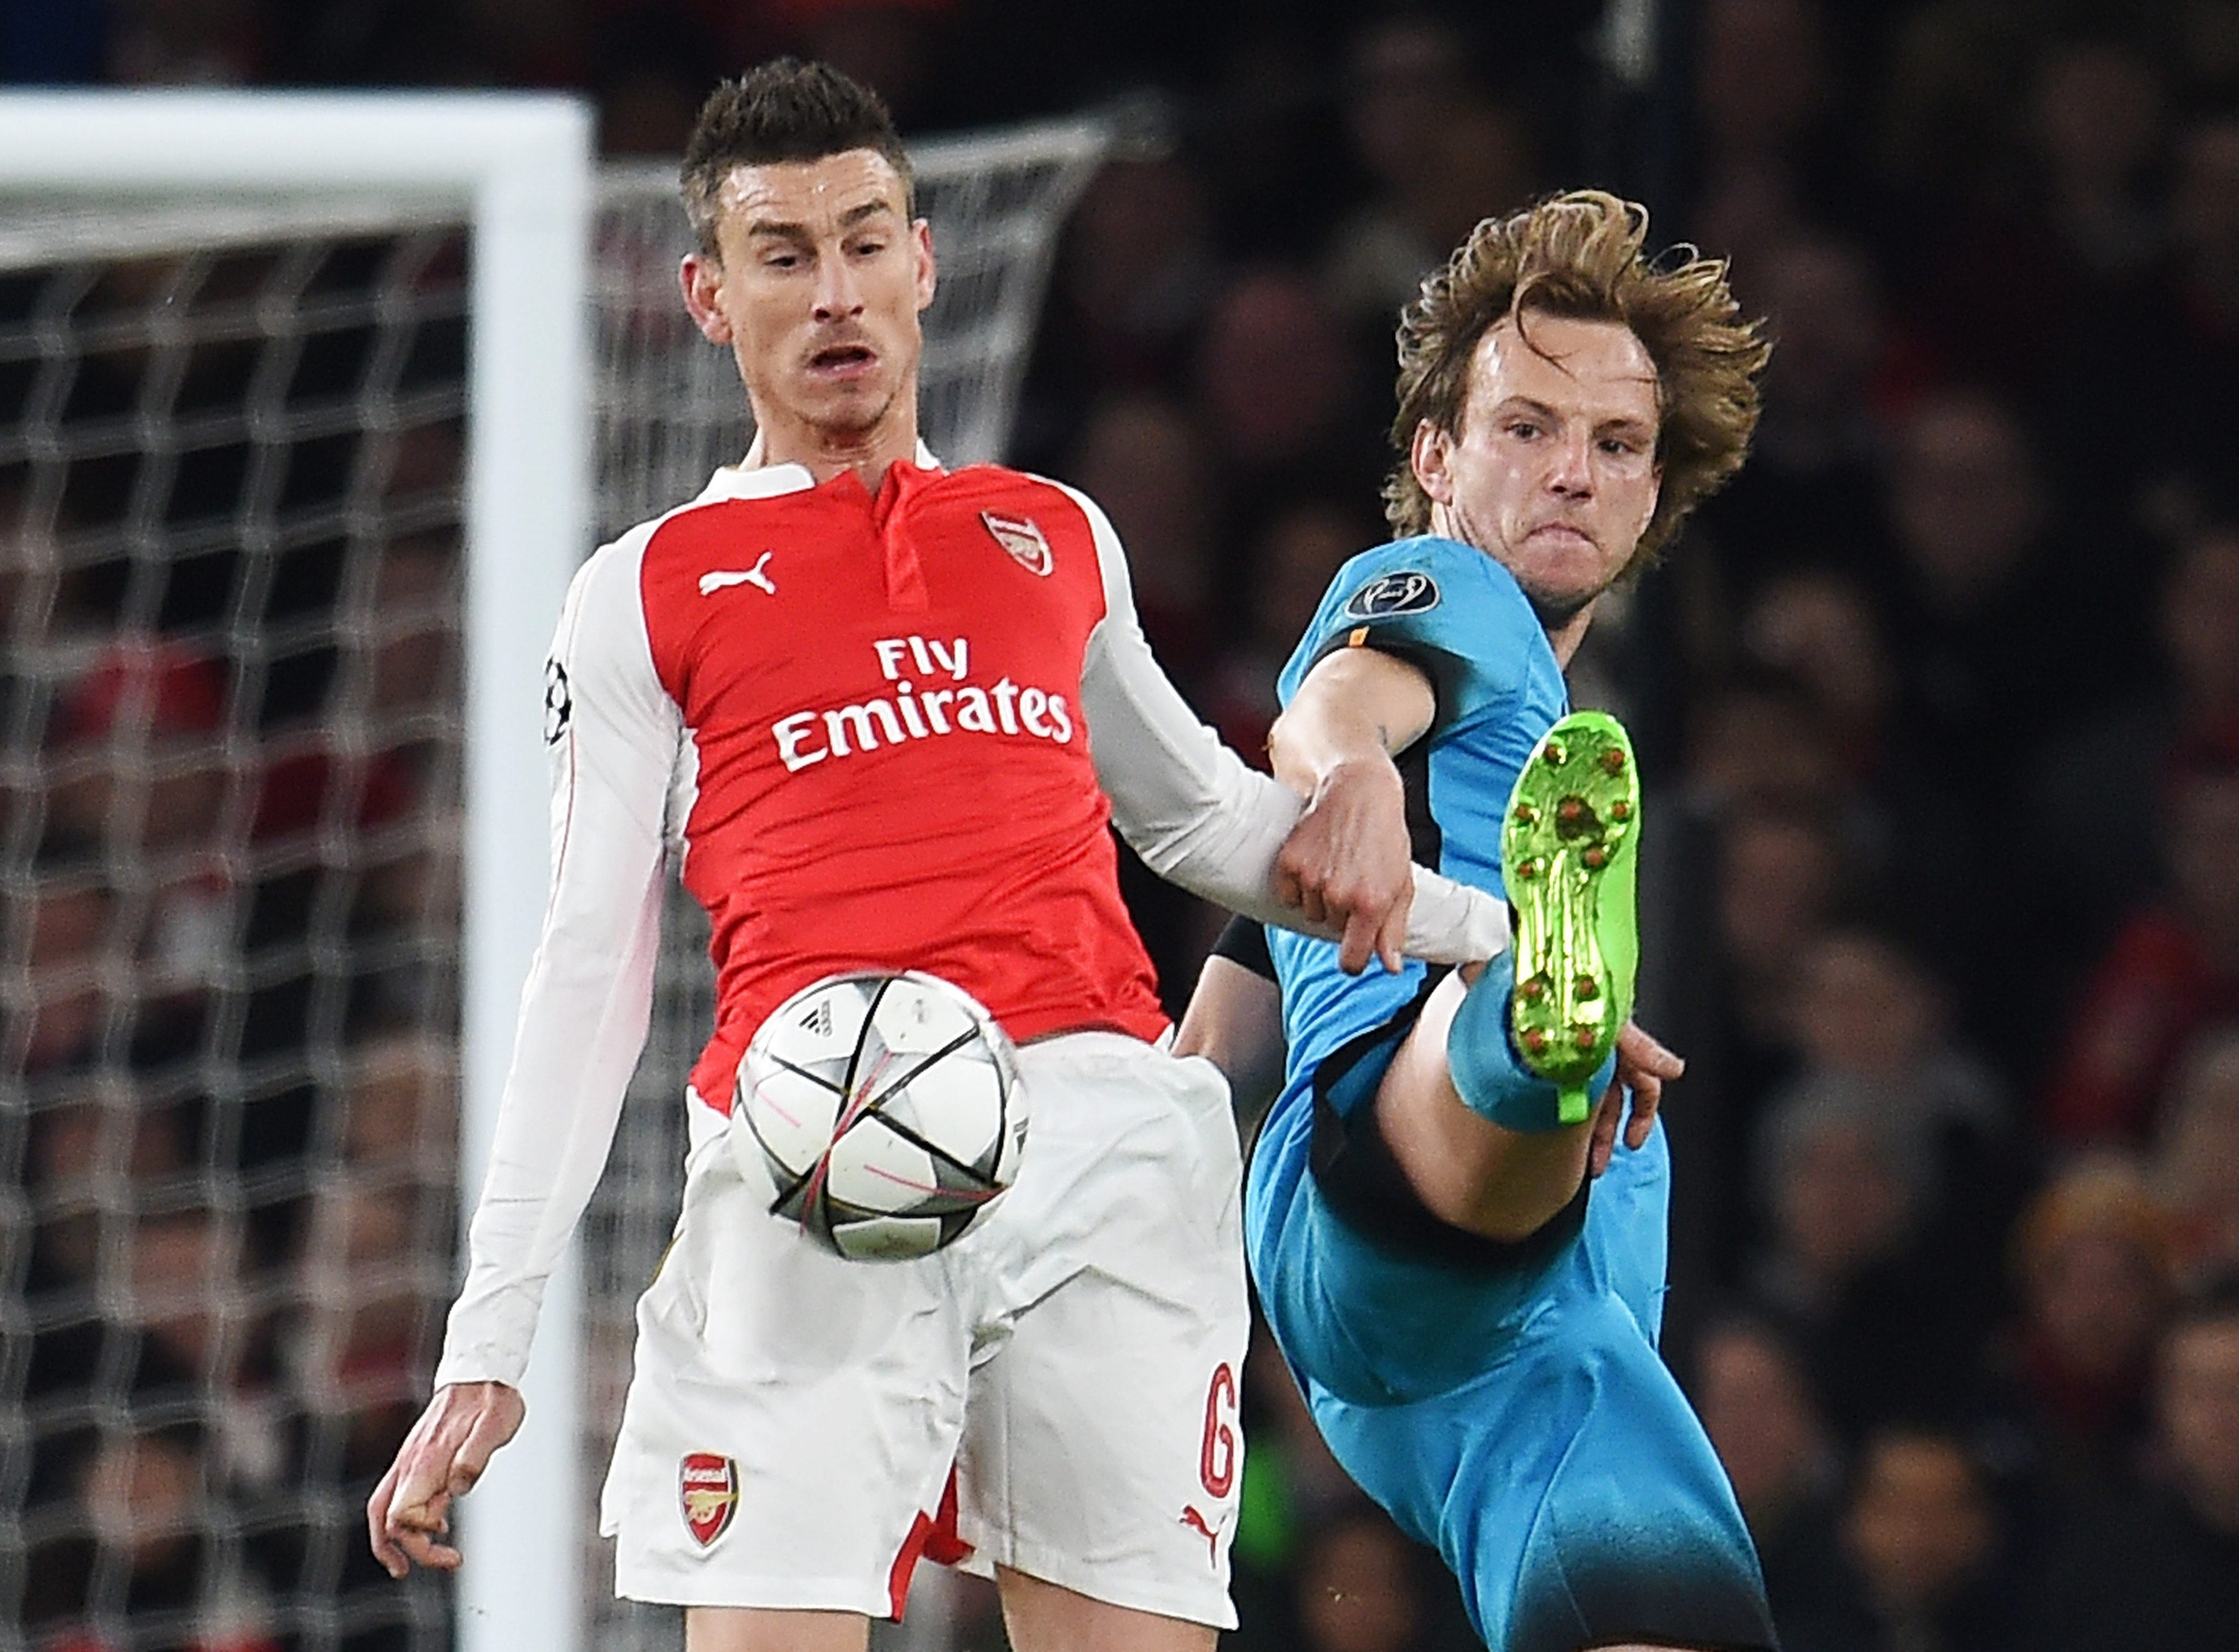 Arsenal's Laurent Koscielny (L) vies for the ball with Barcelona's Ivan Rakitic (R) during the UEFA Champions League Round of 16 first leg soccer match between Arsenal and Barcelona at the Emirates Stadium in London, Britain, 23 February 2016. EPA/ANDY RAIN